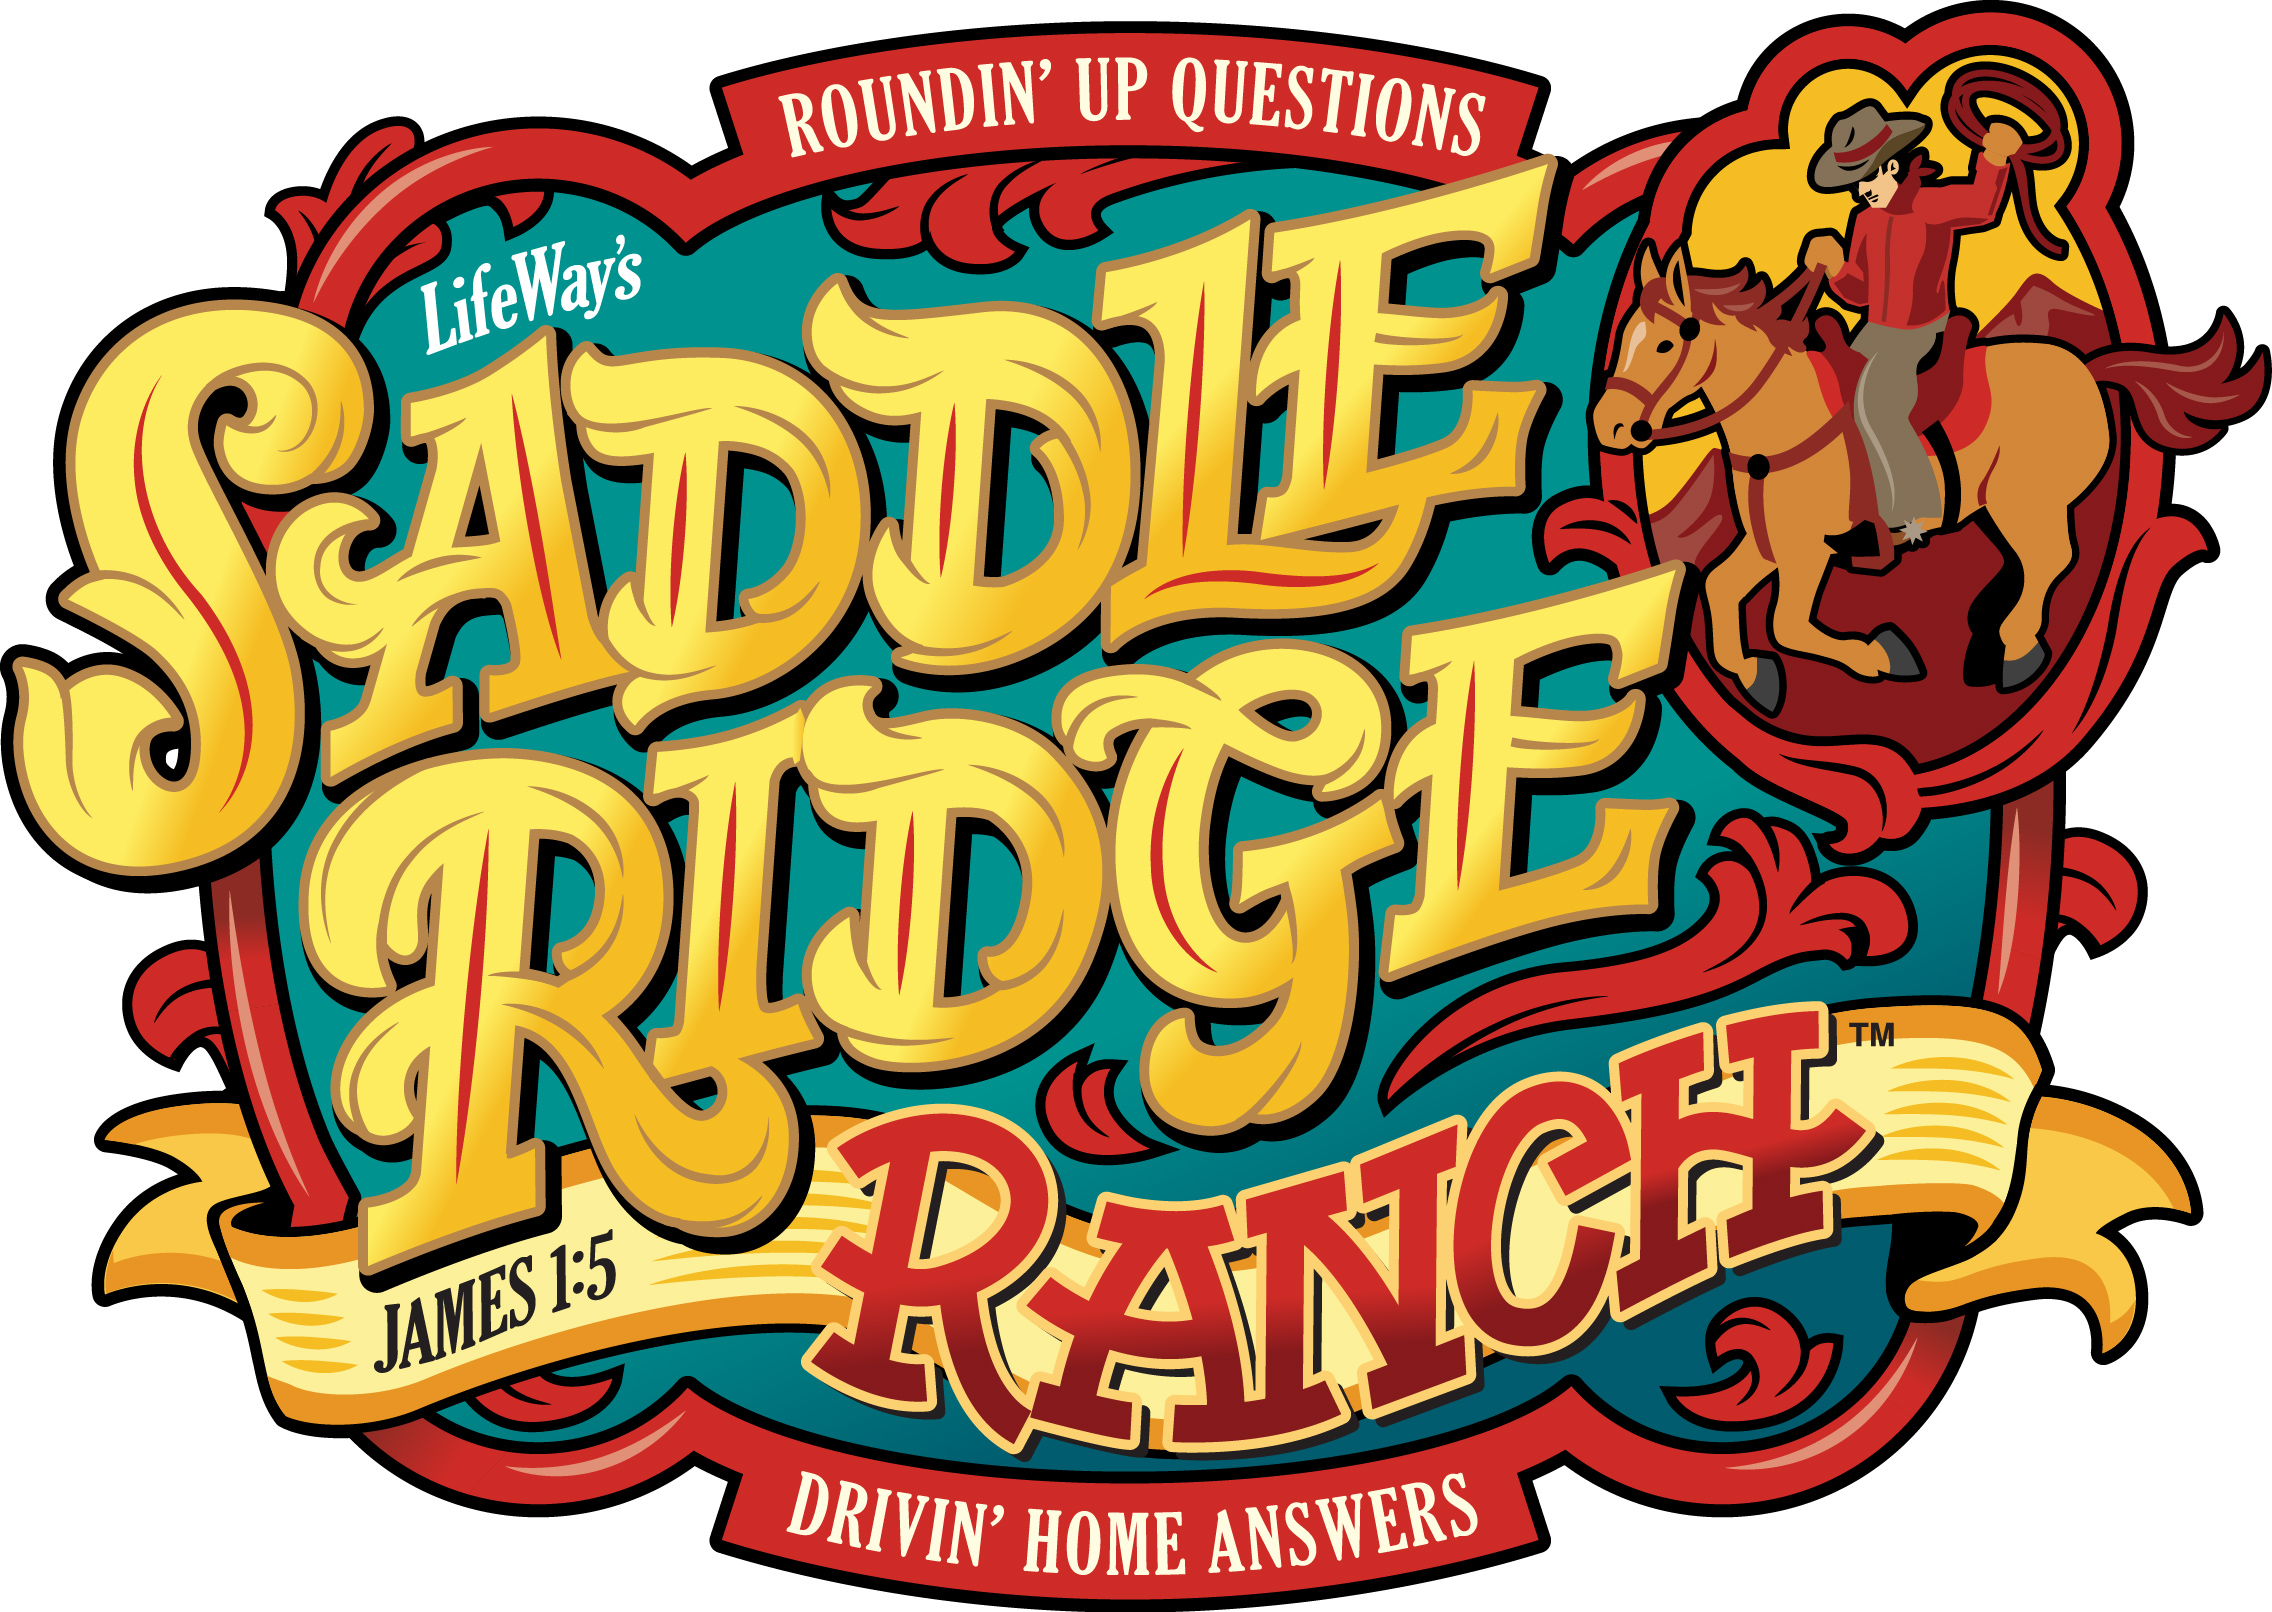 REGISTER HERE for VBS 2014: Saddle Ridge Ranch